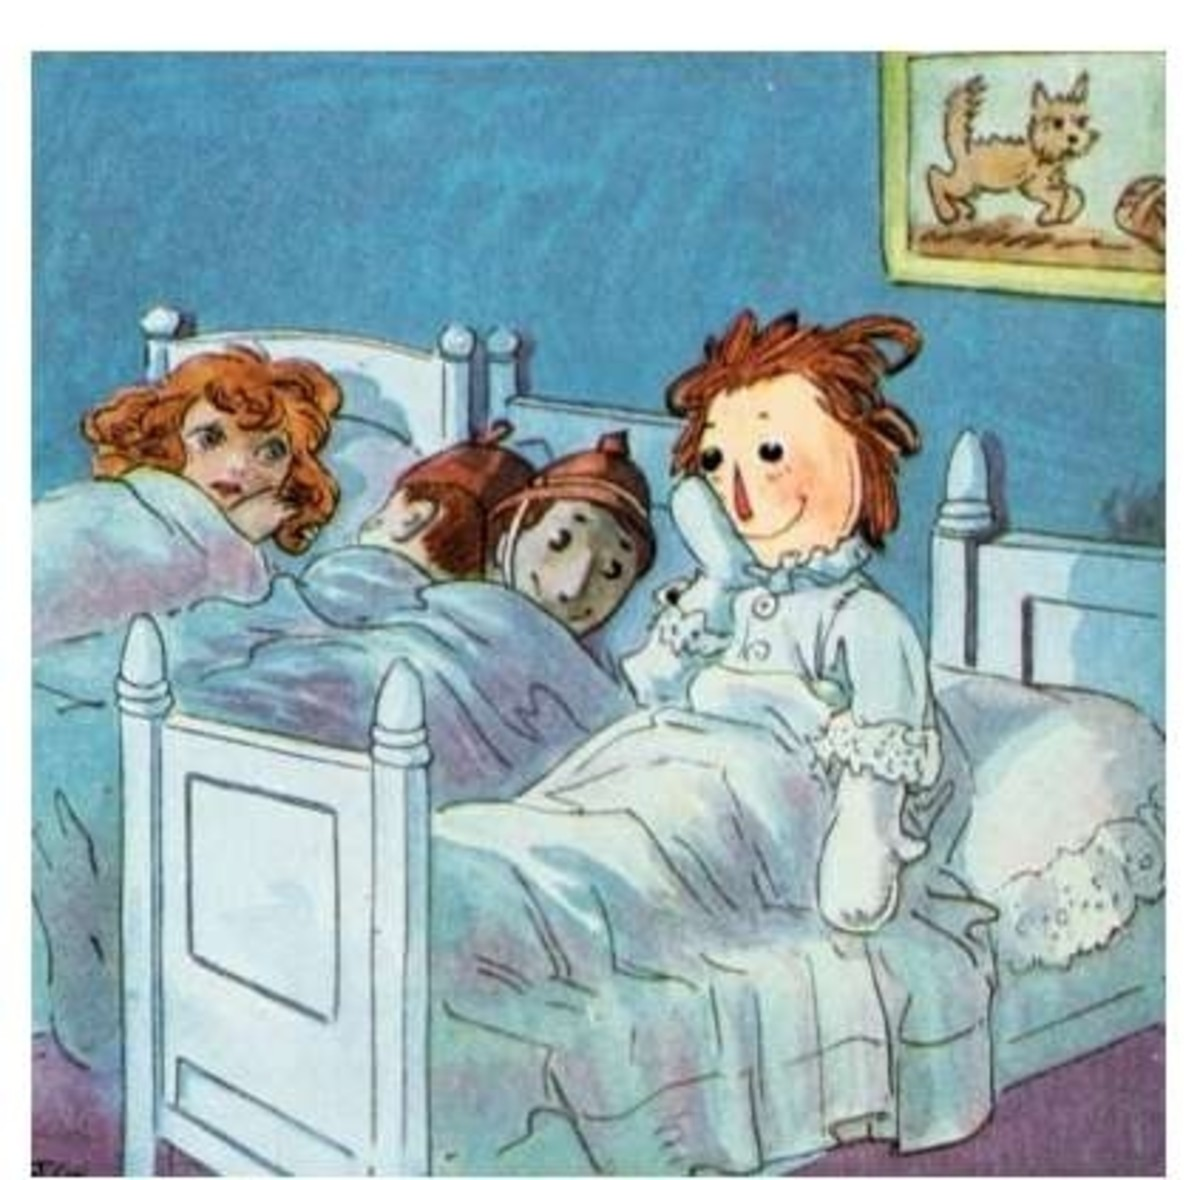 Good night, Raggedy Anne!